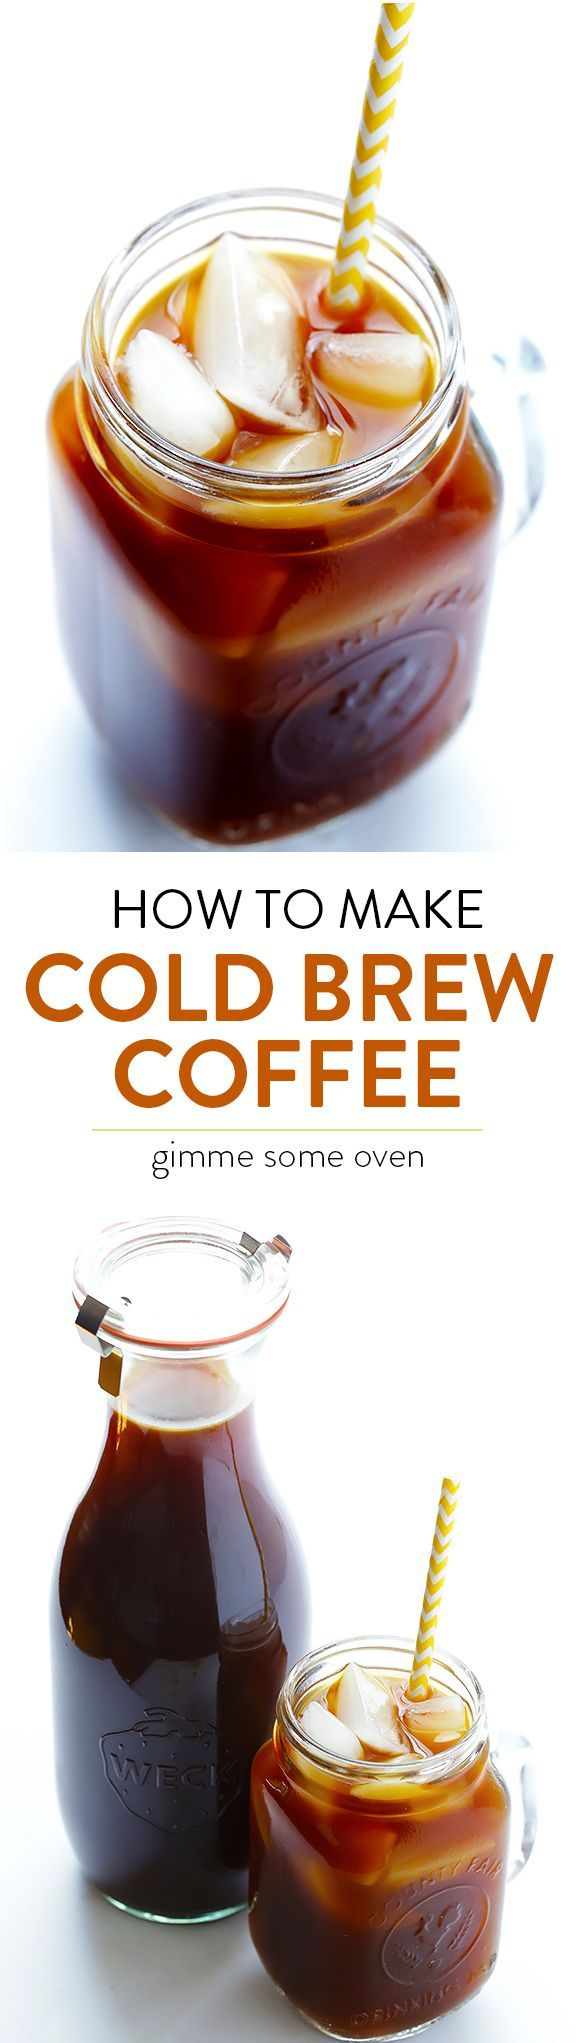 Check out Cold Brew Coffee. It's so easy to make! | Coffee ...